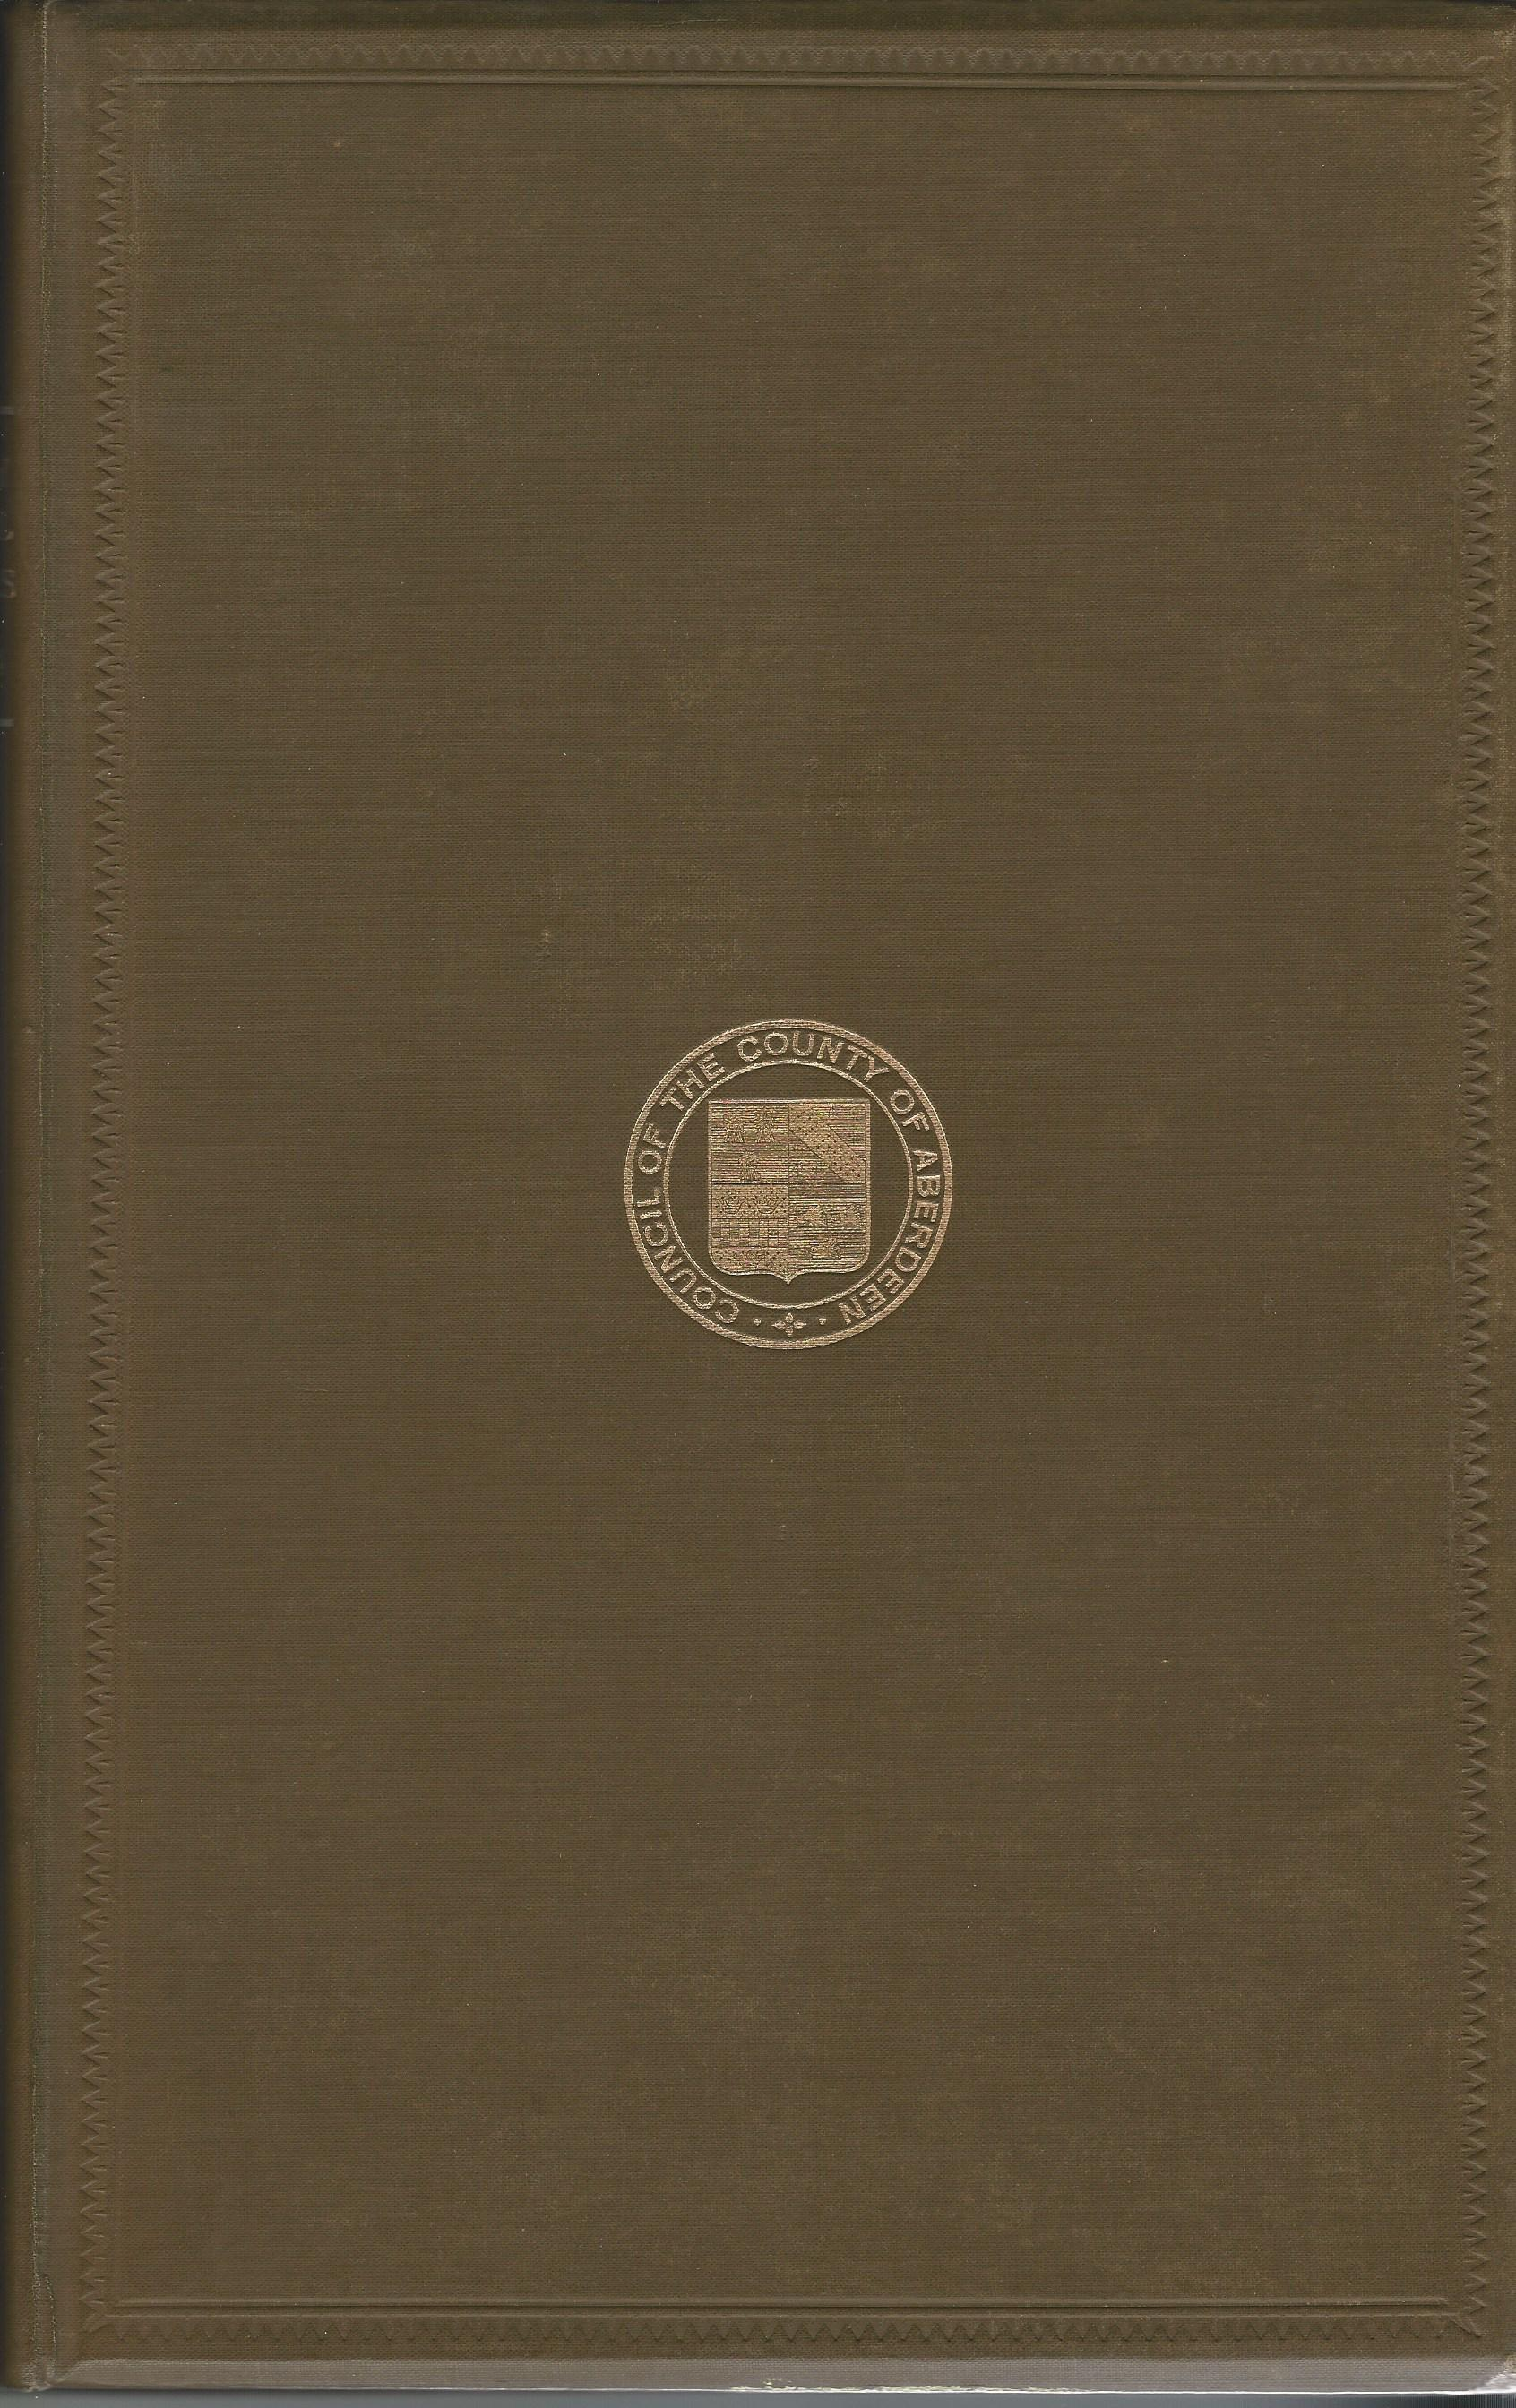 Image for Council of the County of Aberdeen Minutes and Proceedings 1893 - 94